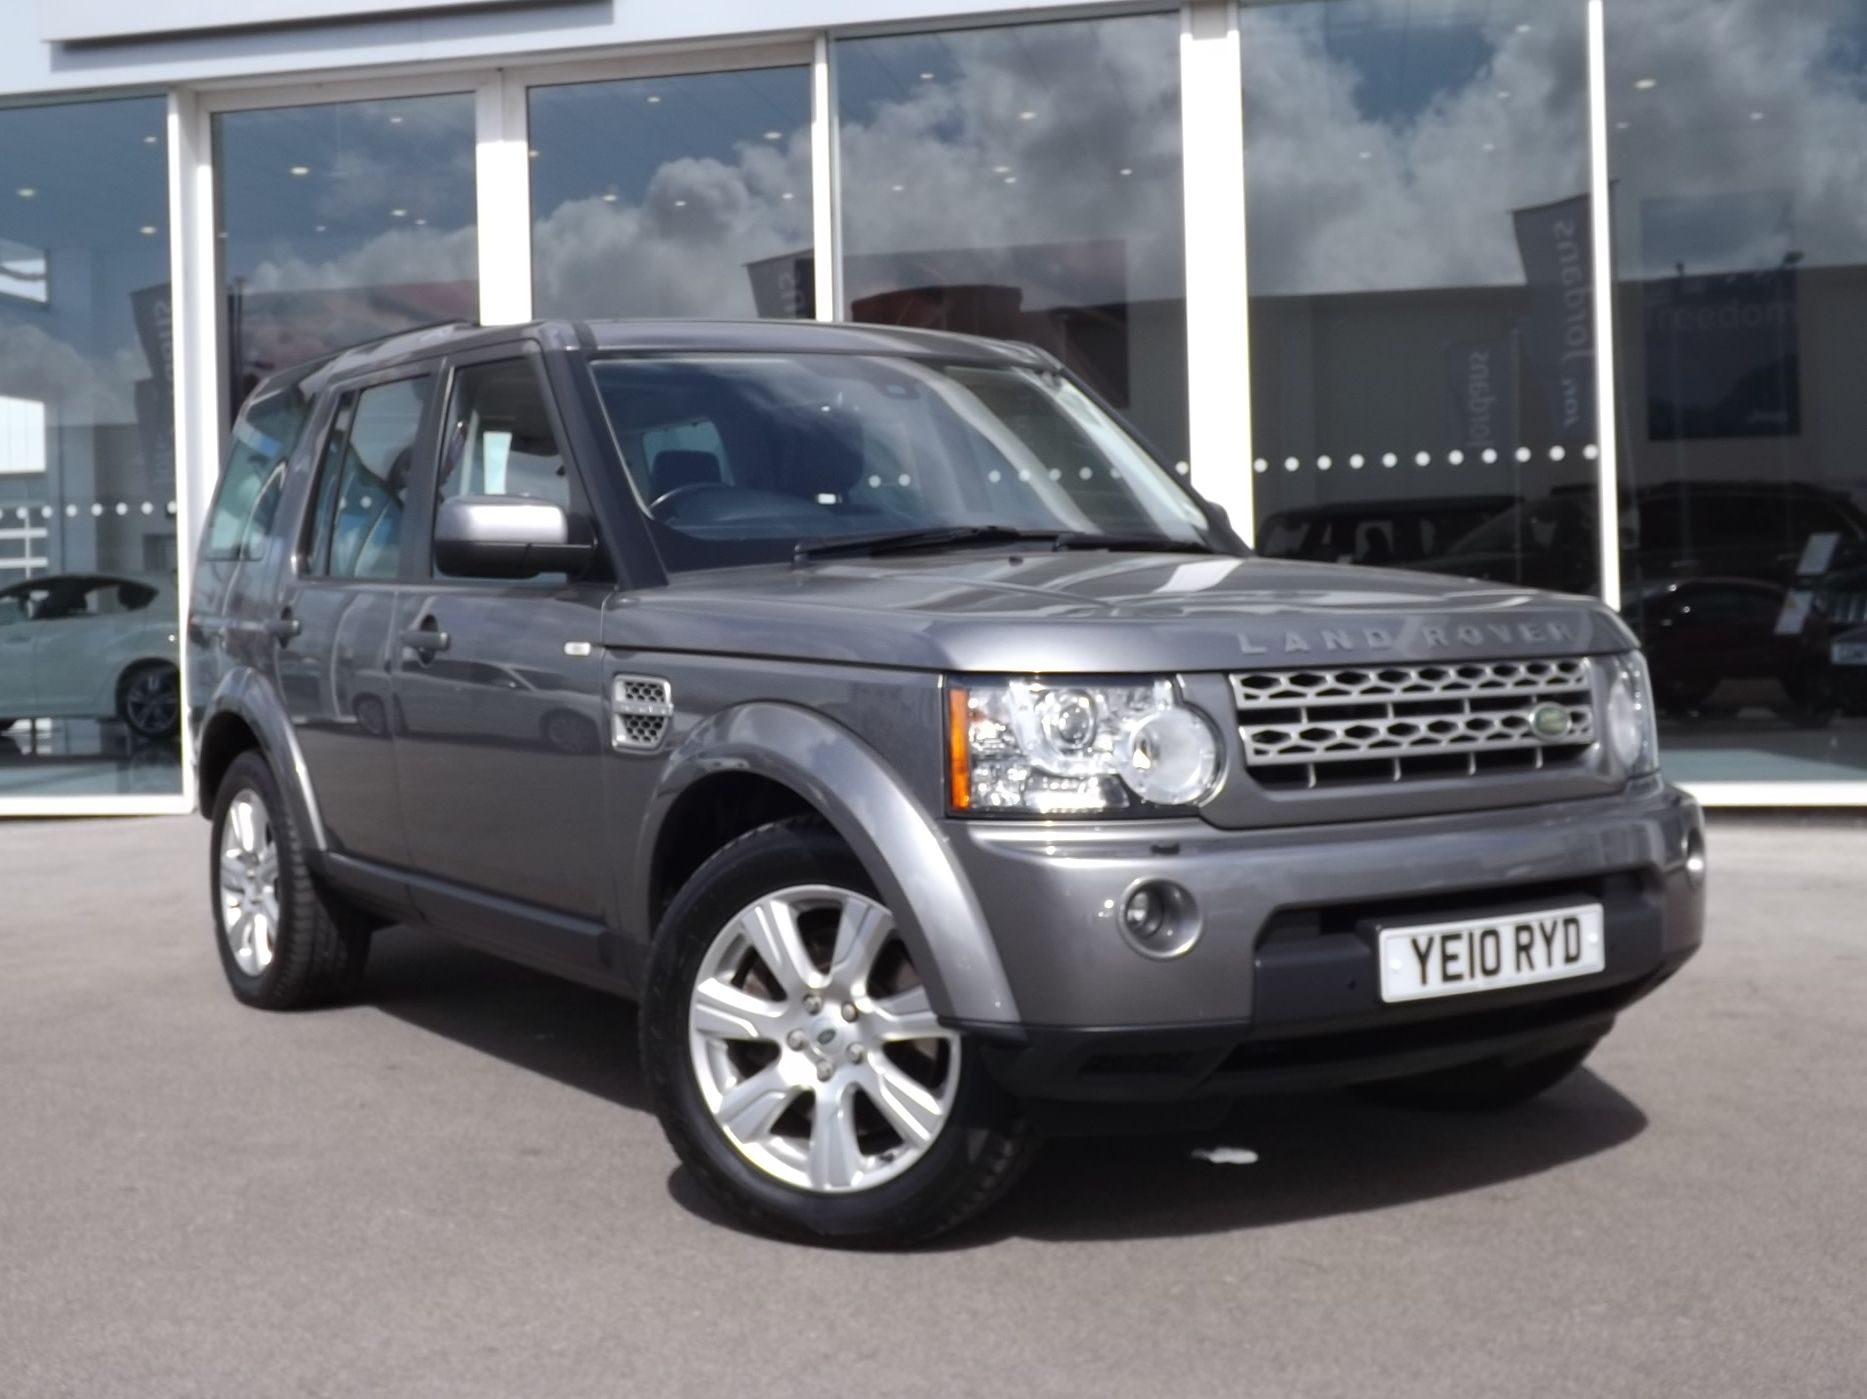 LAND ROVER DISCOVERY 3 0 TDV6 HSE 5dr Auto £31 995